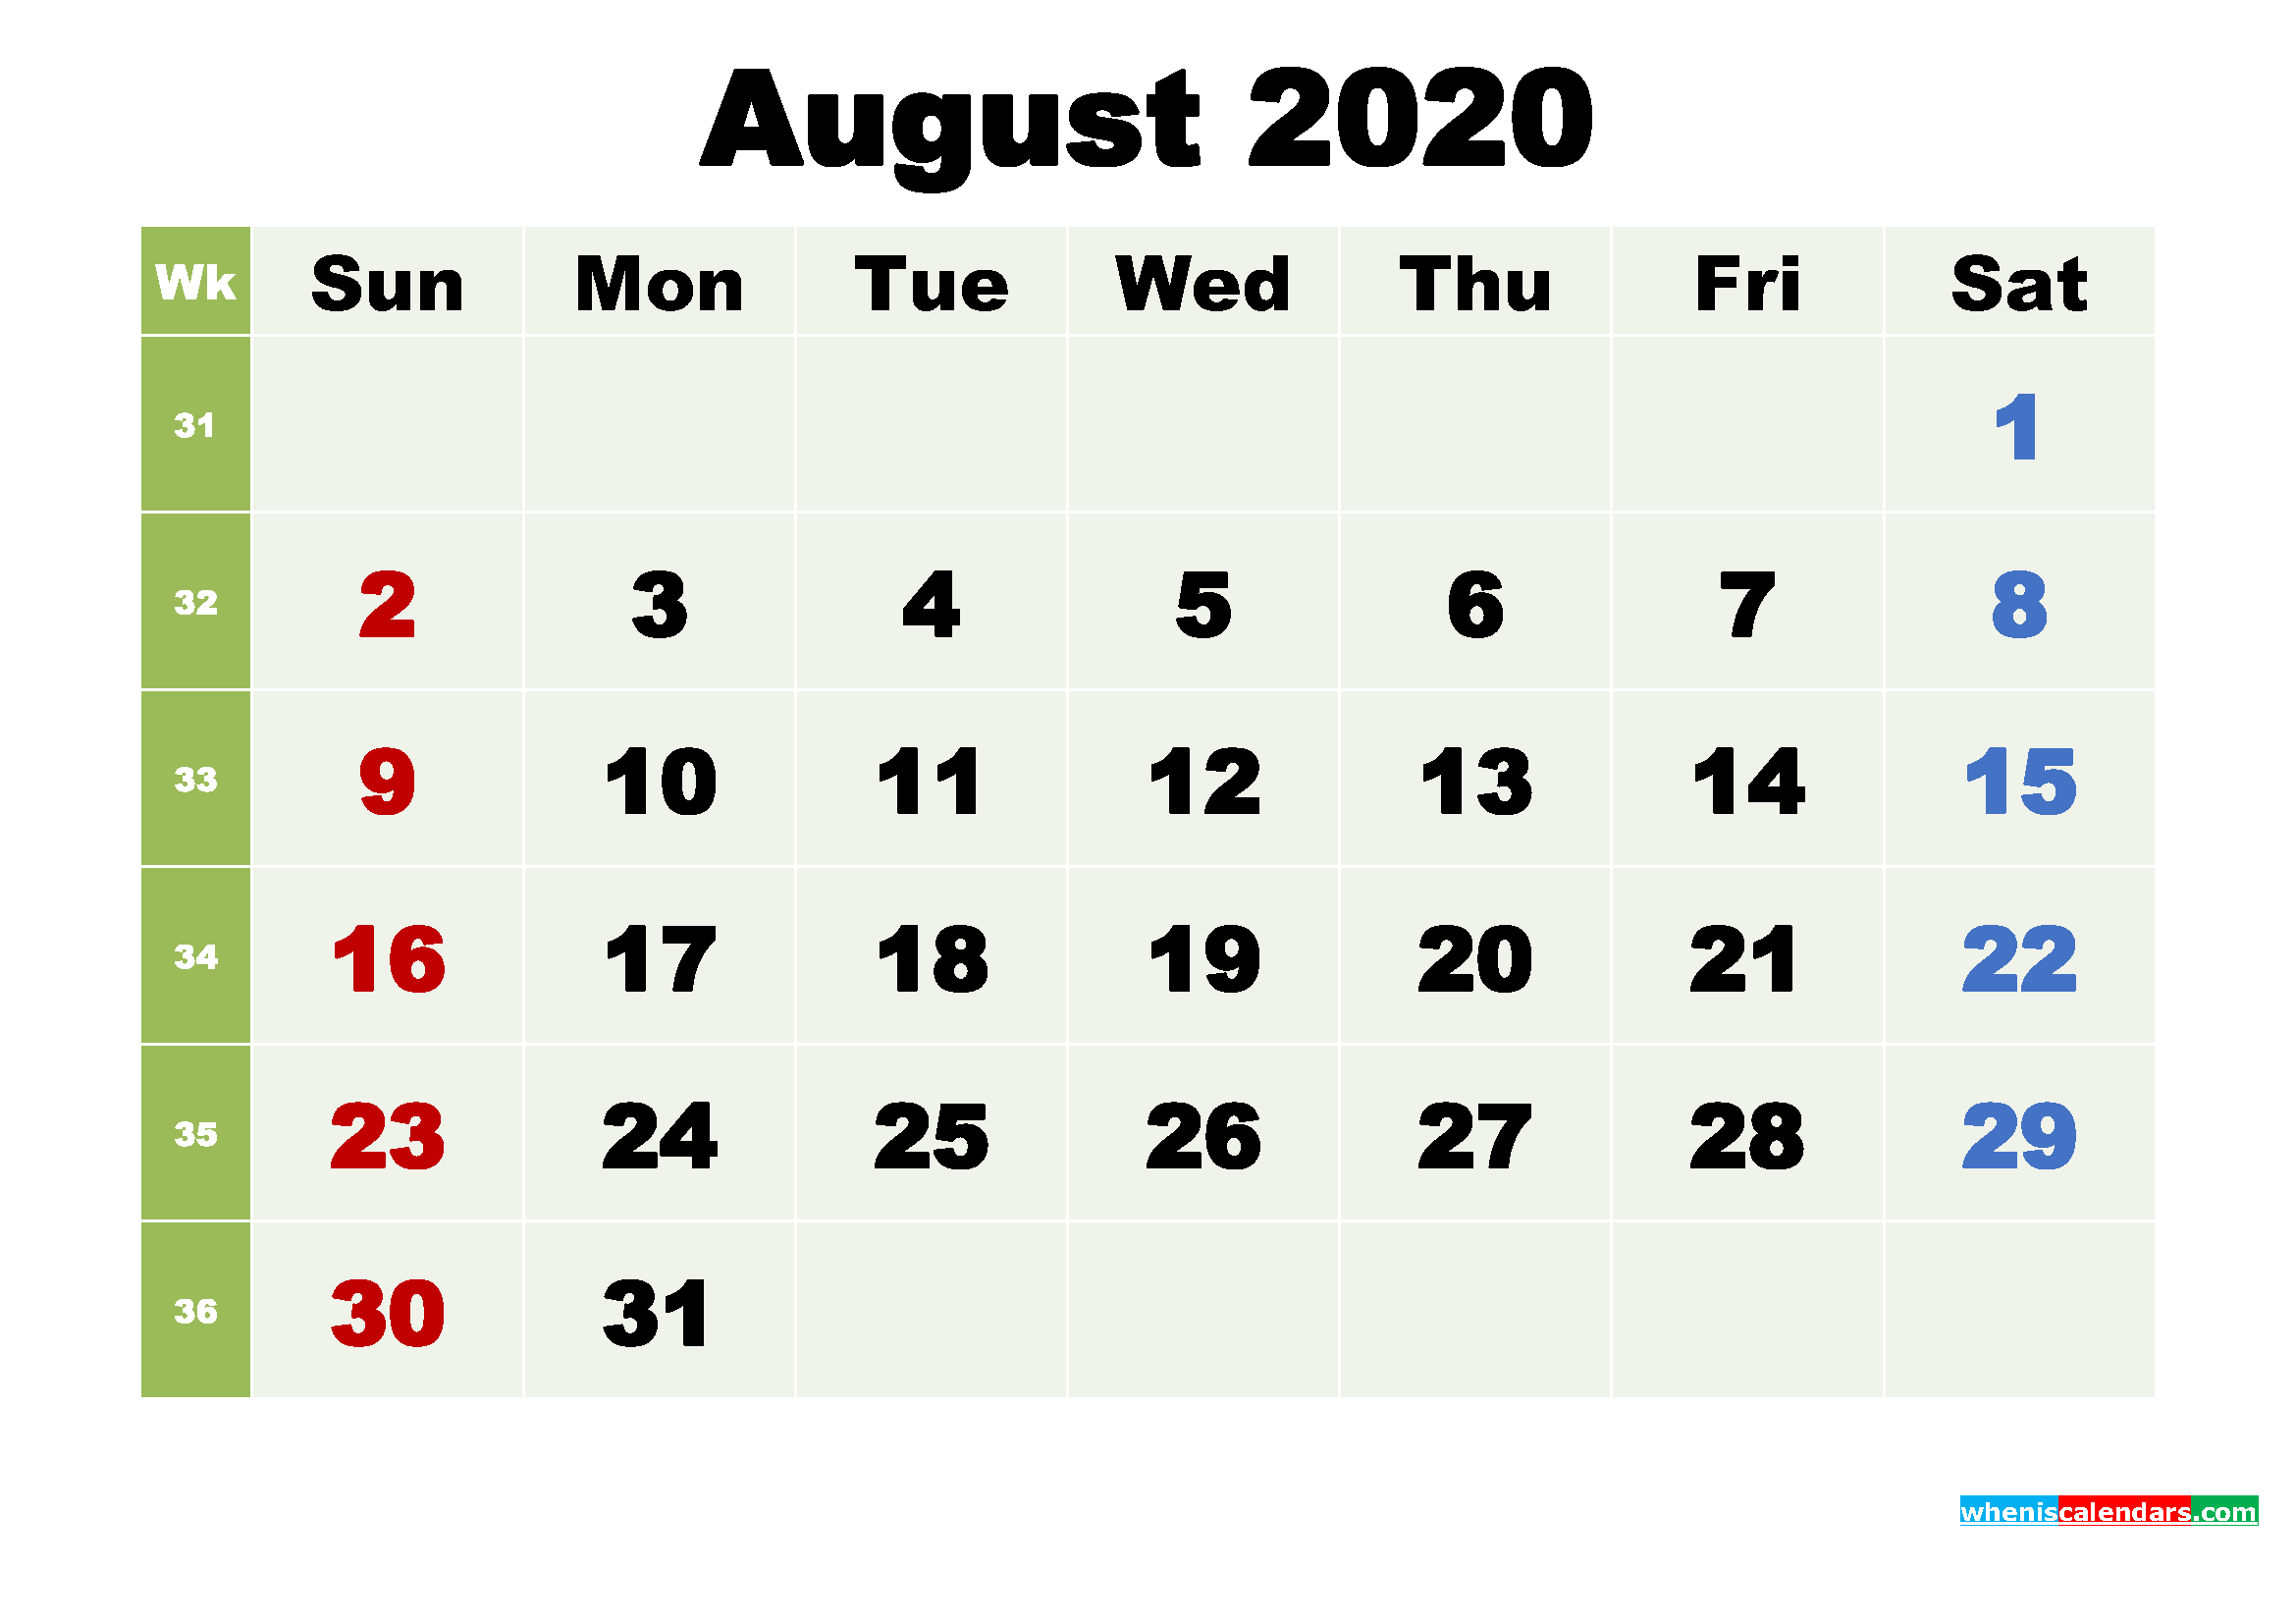 Printable August 2020 Calendar by Month